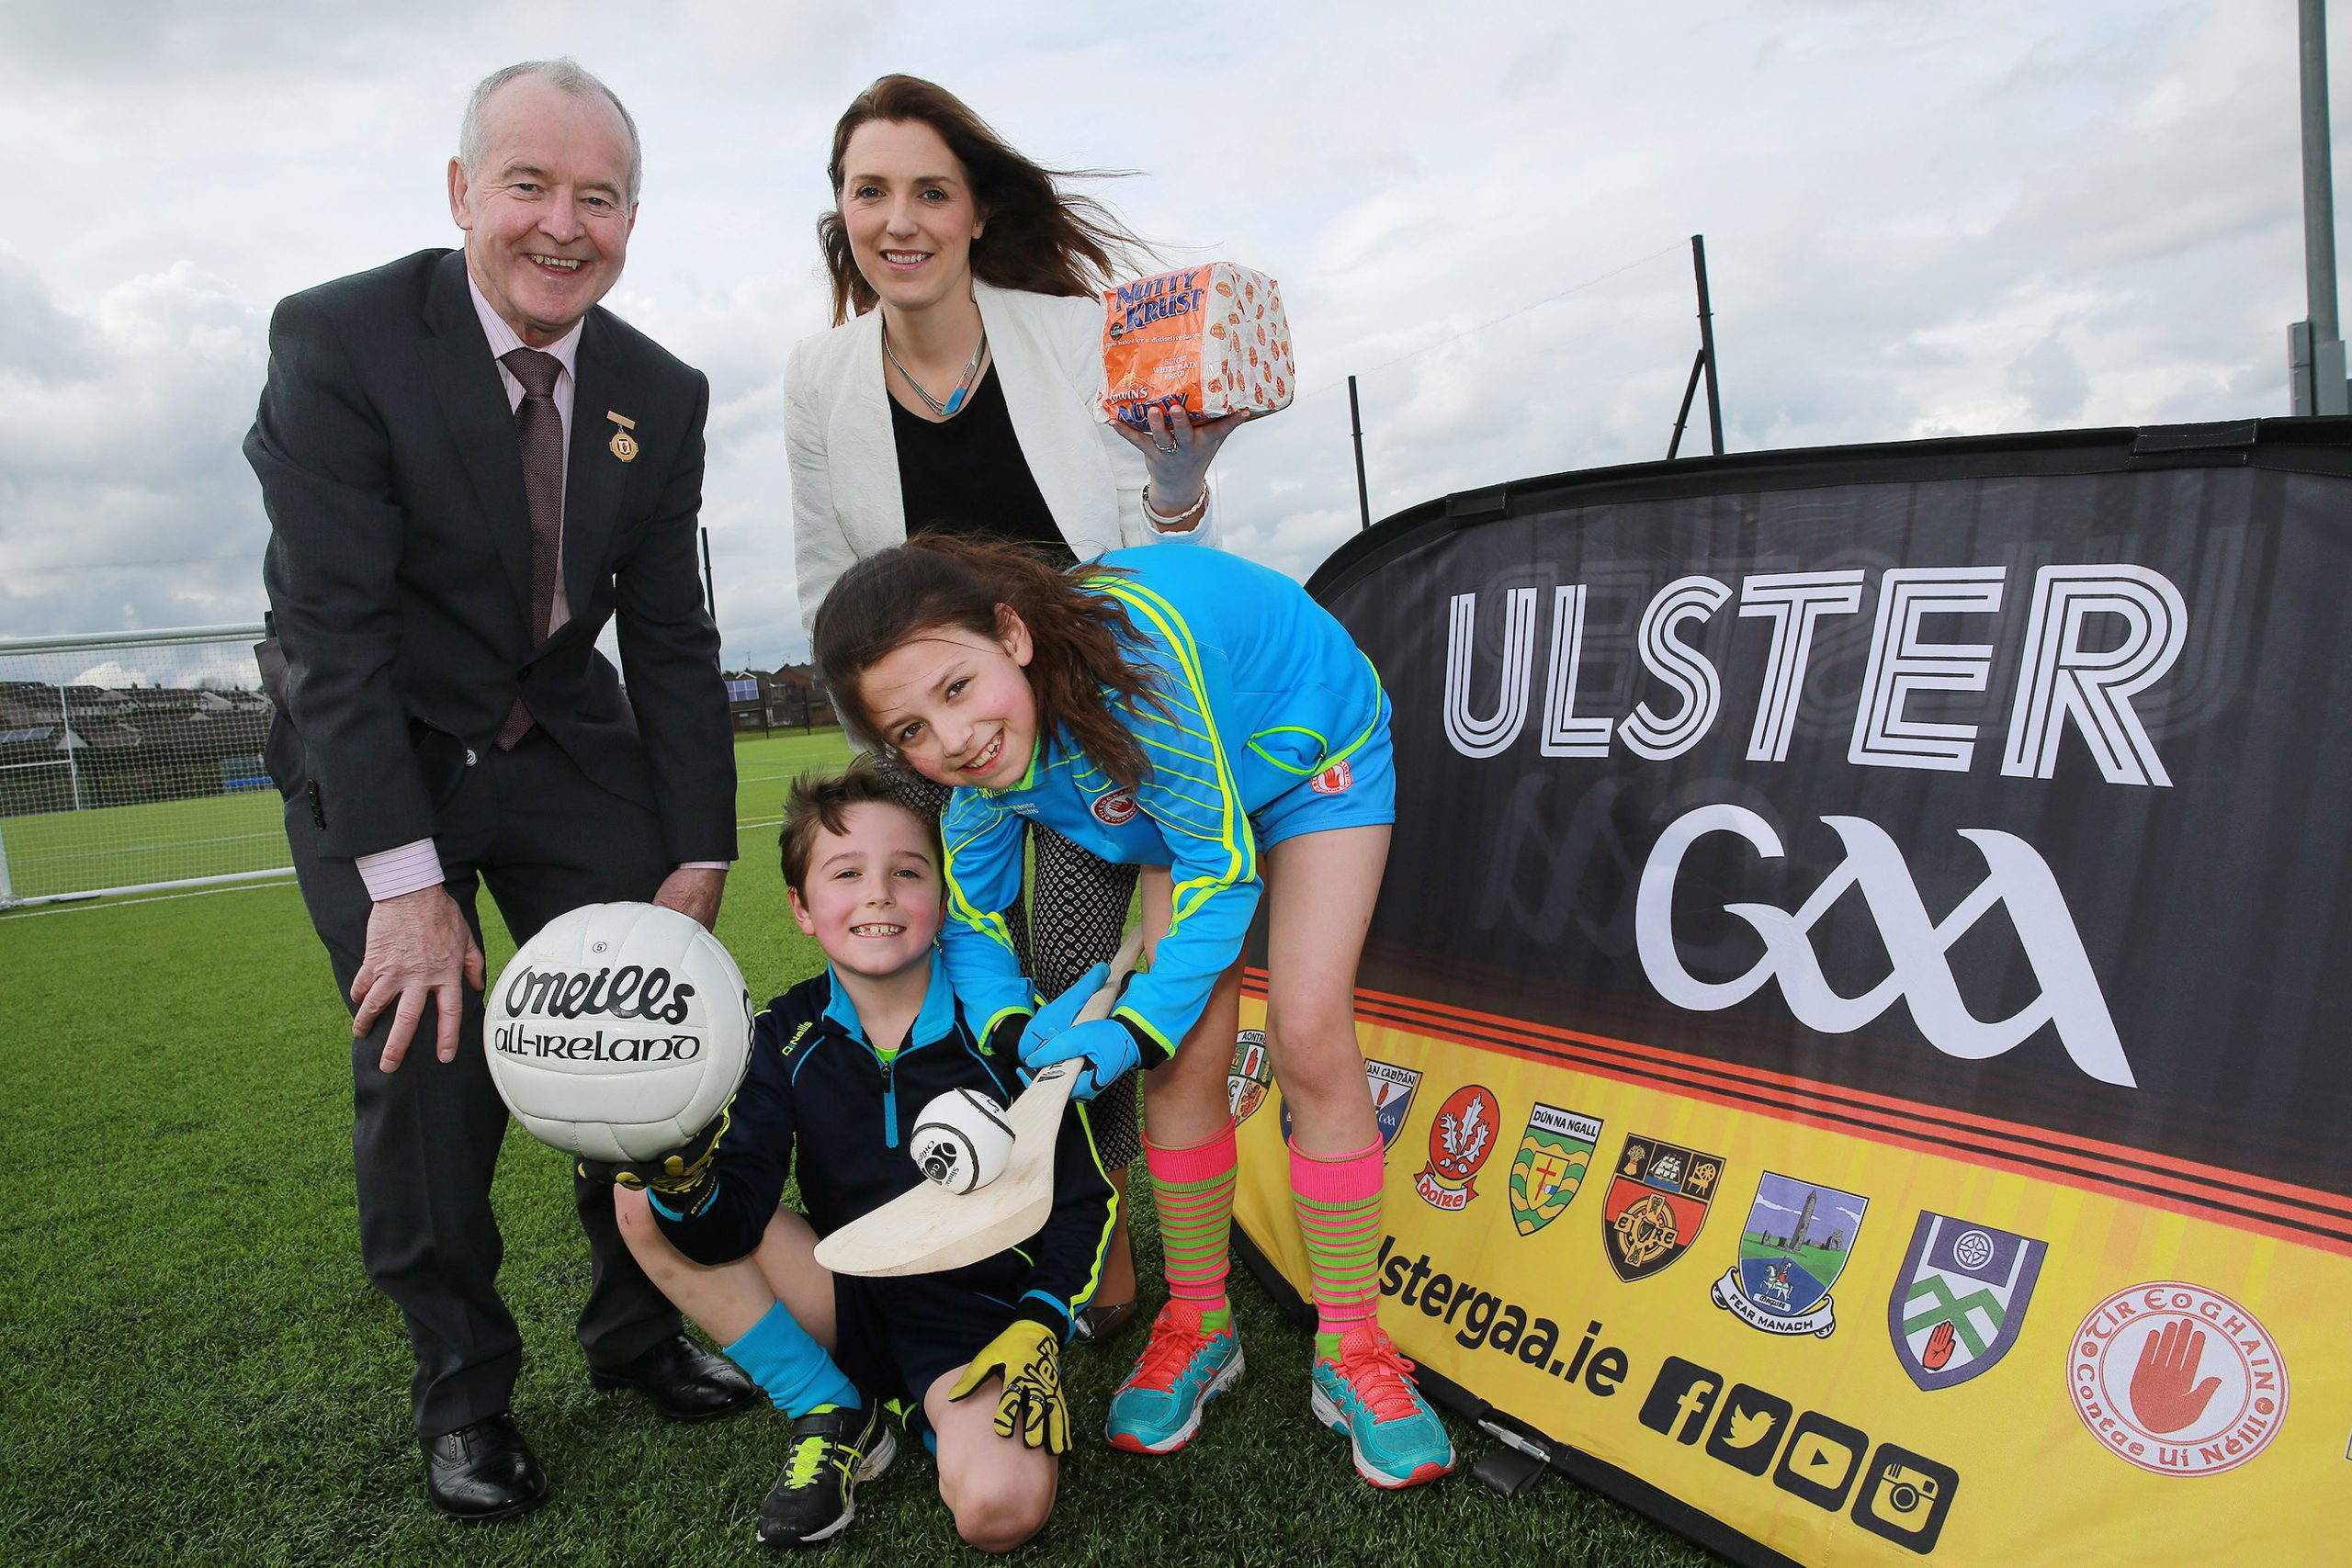 Ulster GAA teams up with Irwin's Bakery for Easter Coaching Camps